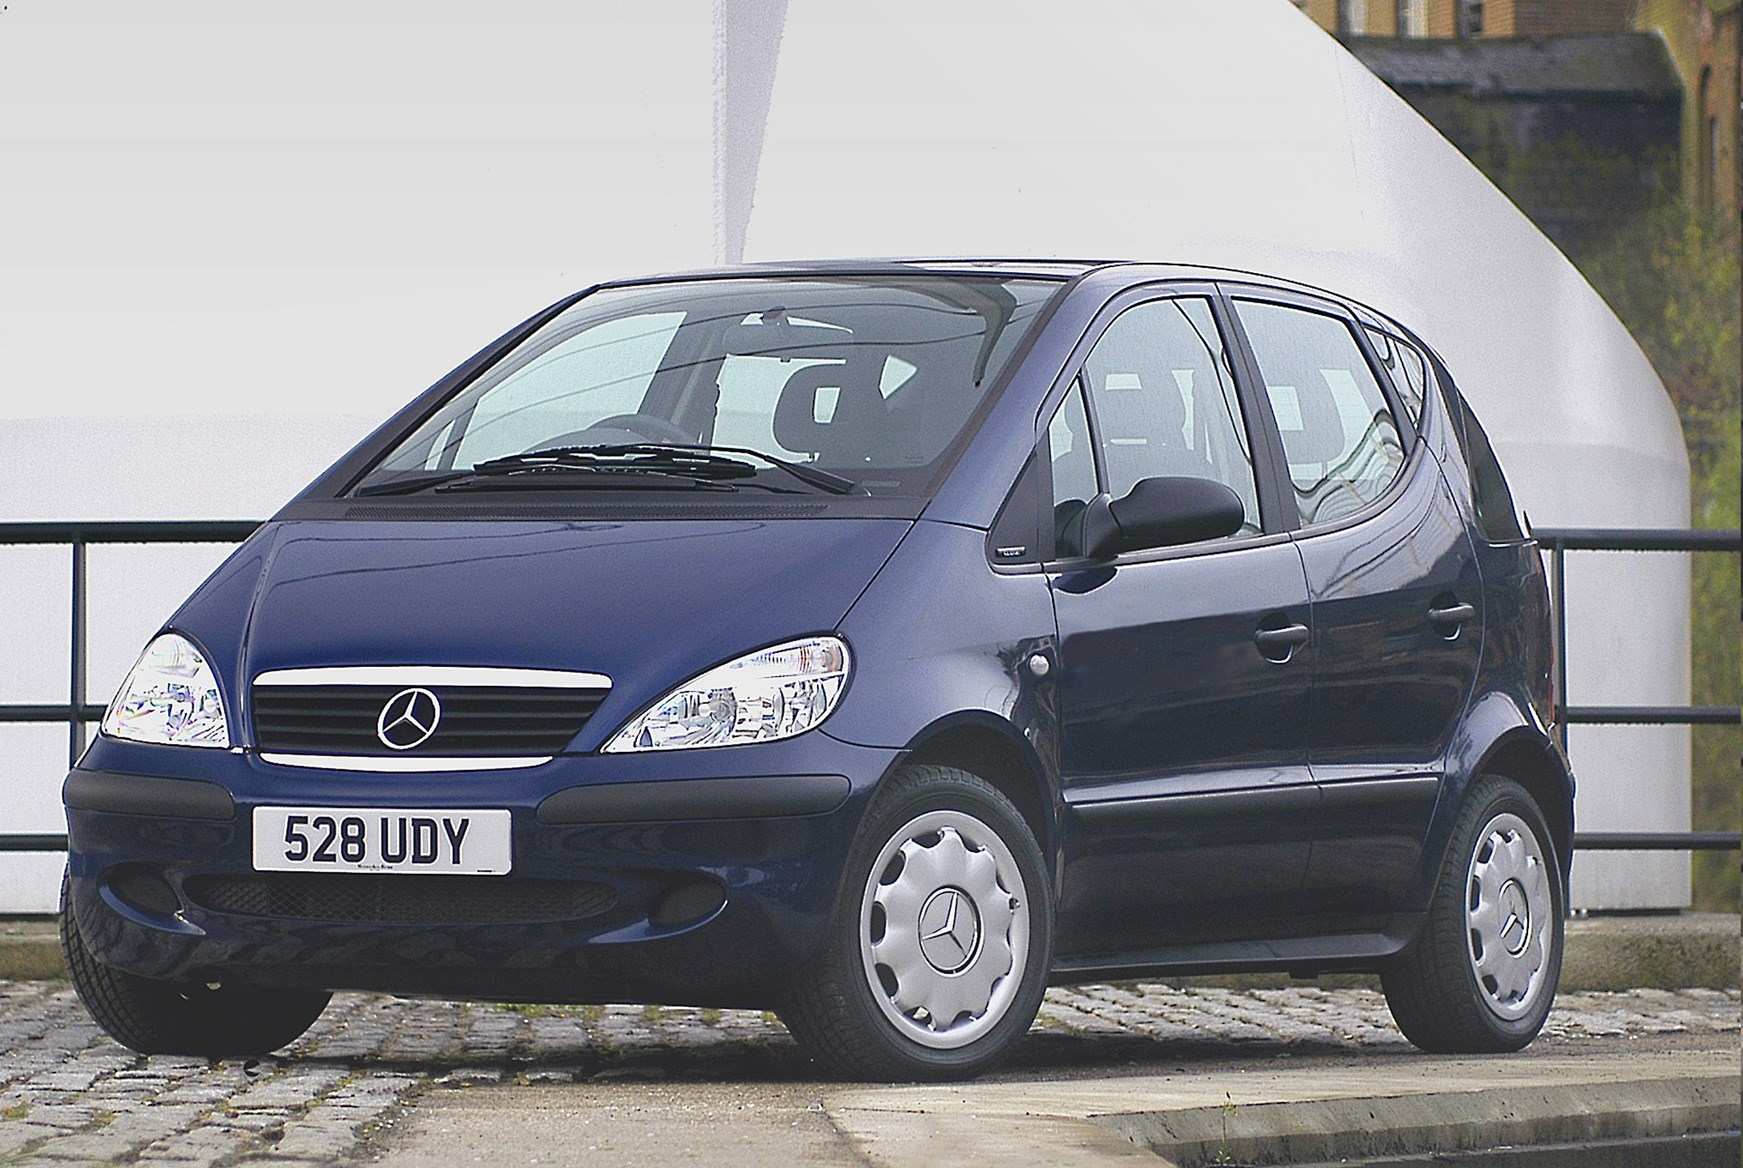 Mercedes benz a class hatchback review 1998 2004 parkers for Small mercedes benz